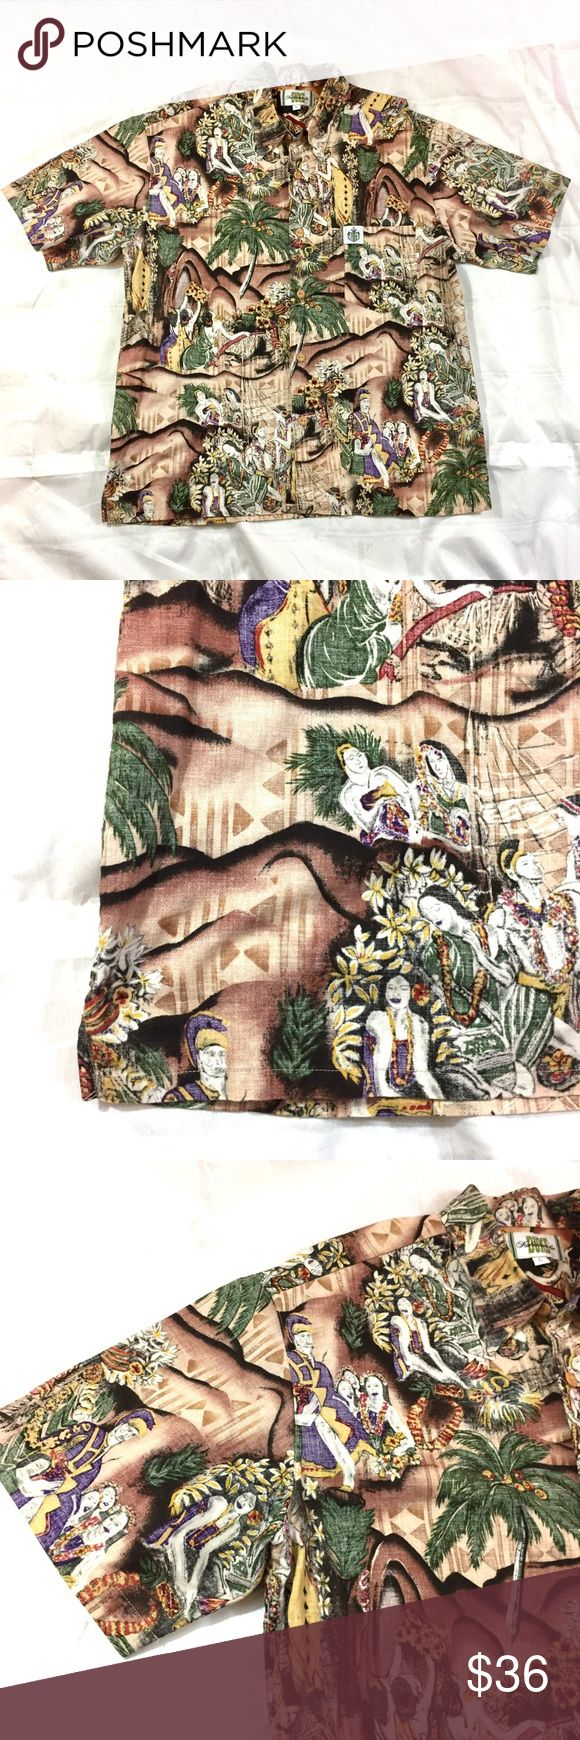 """Hawaiian Shirt Size L Duke Kahanamoku Men's Aloha Aloha and thank you checking out my closet! 🌺  This is a very cool Hawaiian shirt from the Duke Kahanamoku label, size large. It's 100% cotton. The pattern has King Kamehameha as well as girls in grass skirts. The chest measures 24.25"""" across. The length is 30"""". Perfect pau hana attire! Duke Kahanamoku Shirts Casual Button Down Shirts"""